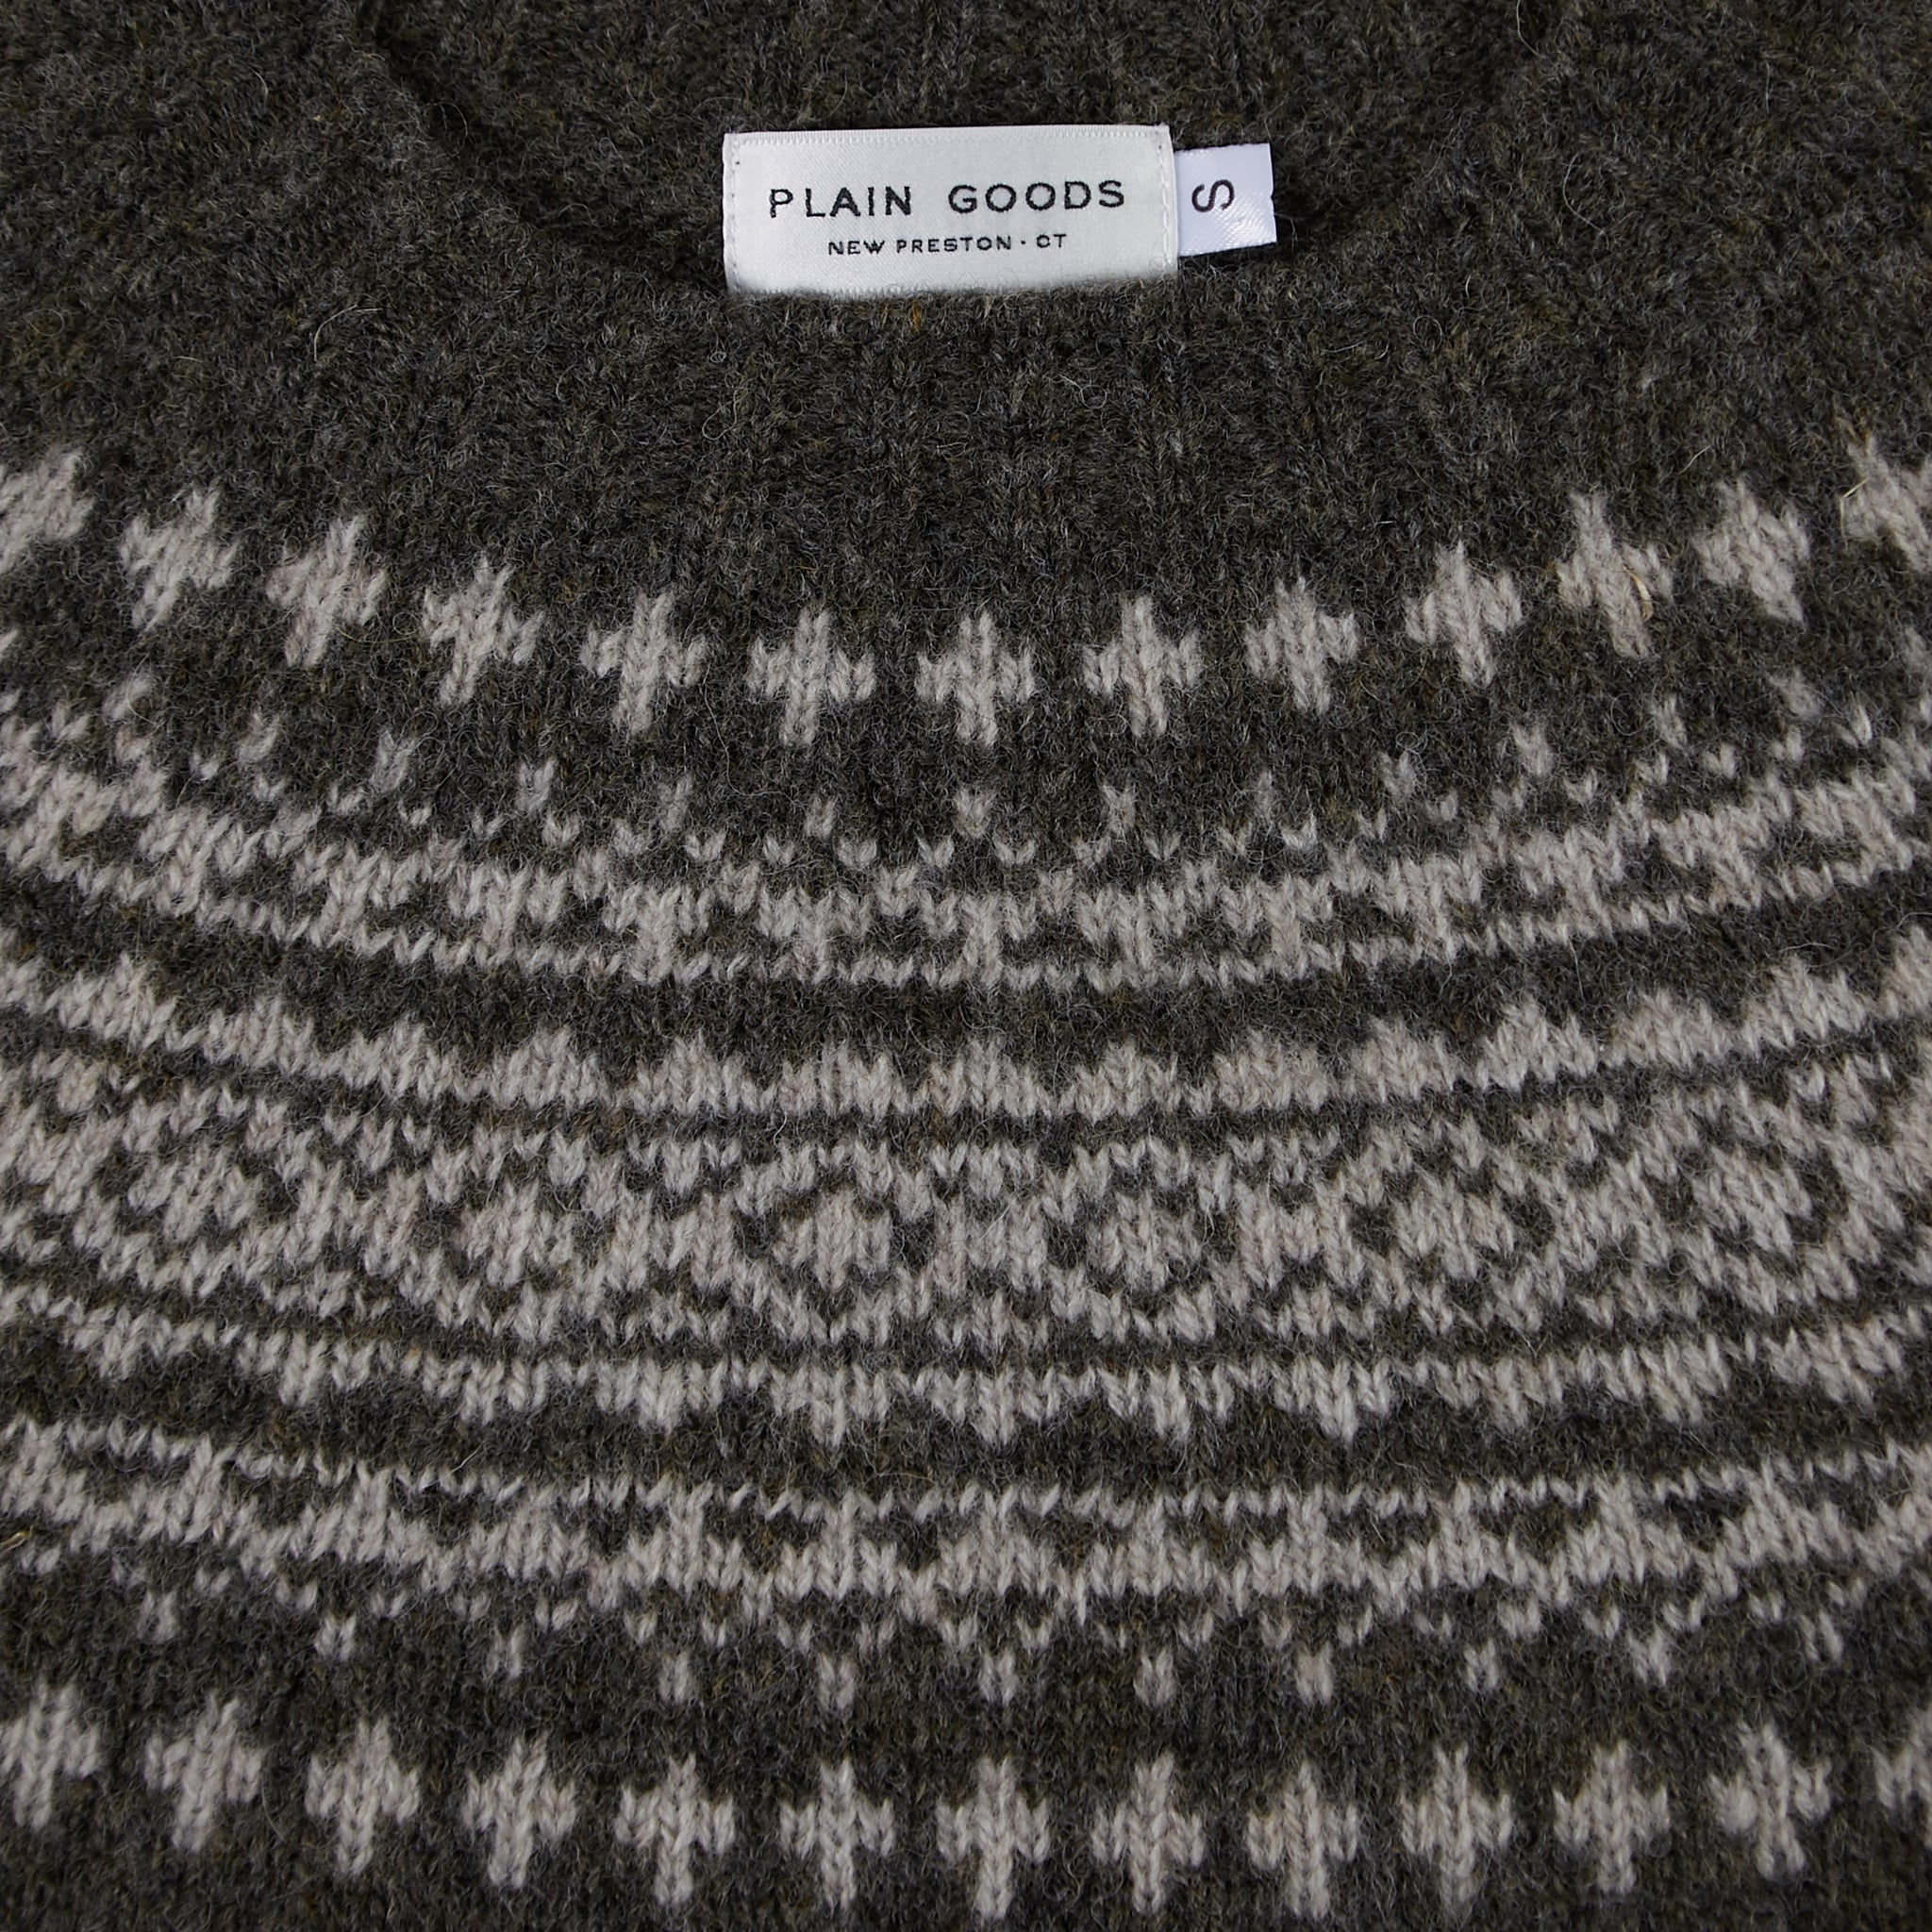 PLAIN GOODS MEN'S FAIR ISLE SWEATER